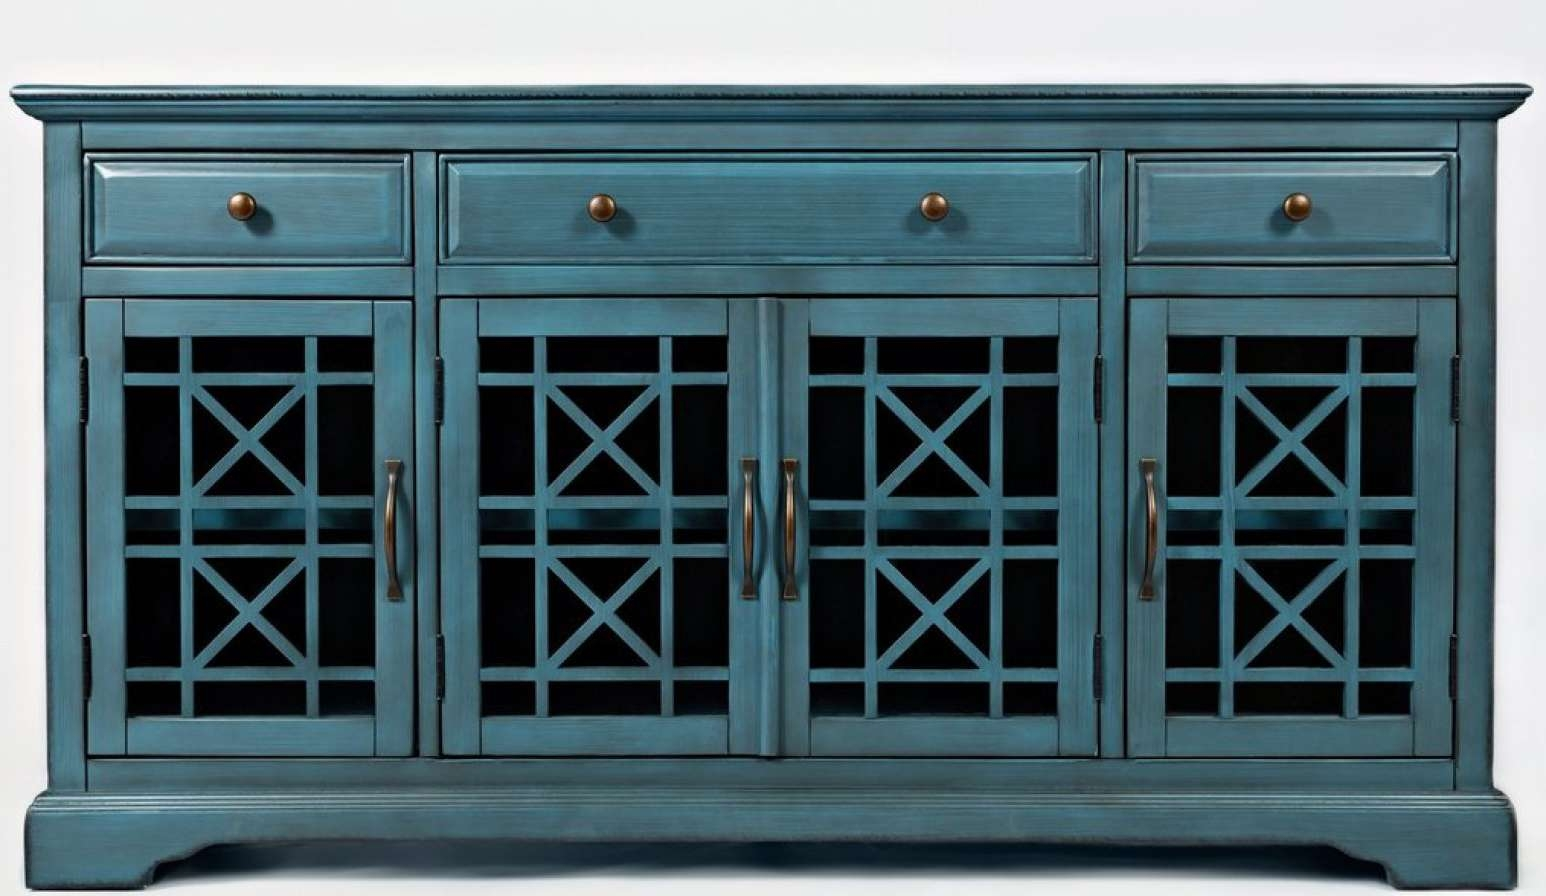 Sideboard : Elegant Sideboards Notable Decorating An Antique Within Elegant Sideboards (View 13 of 20)